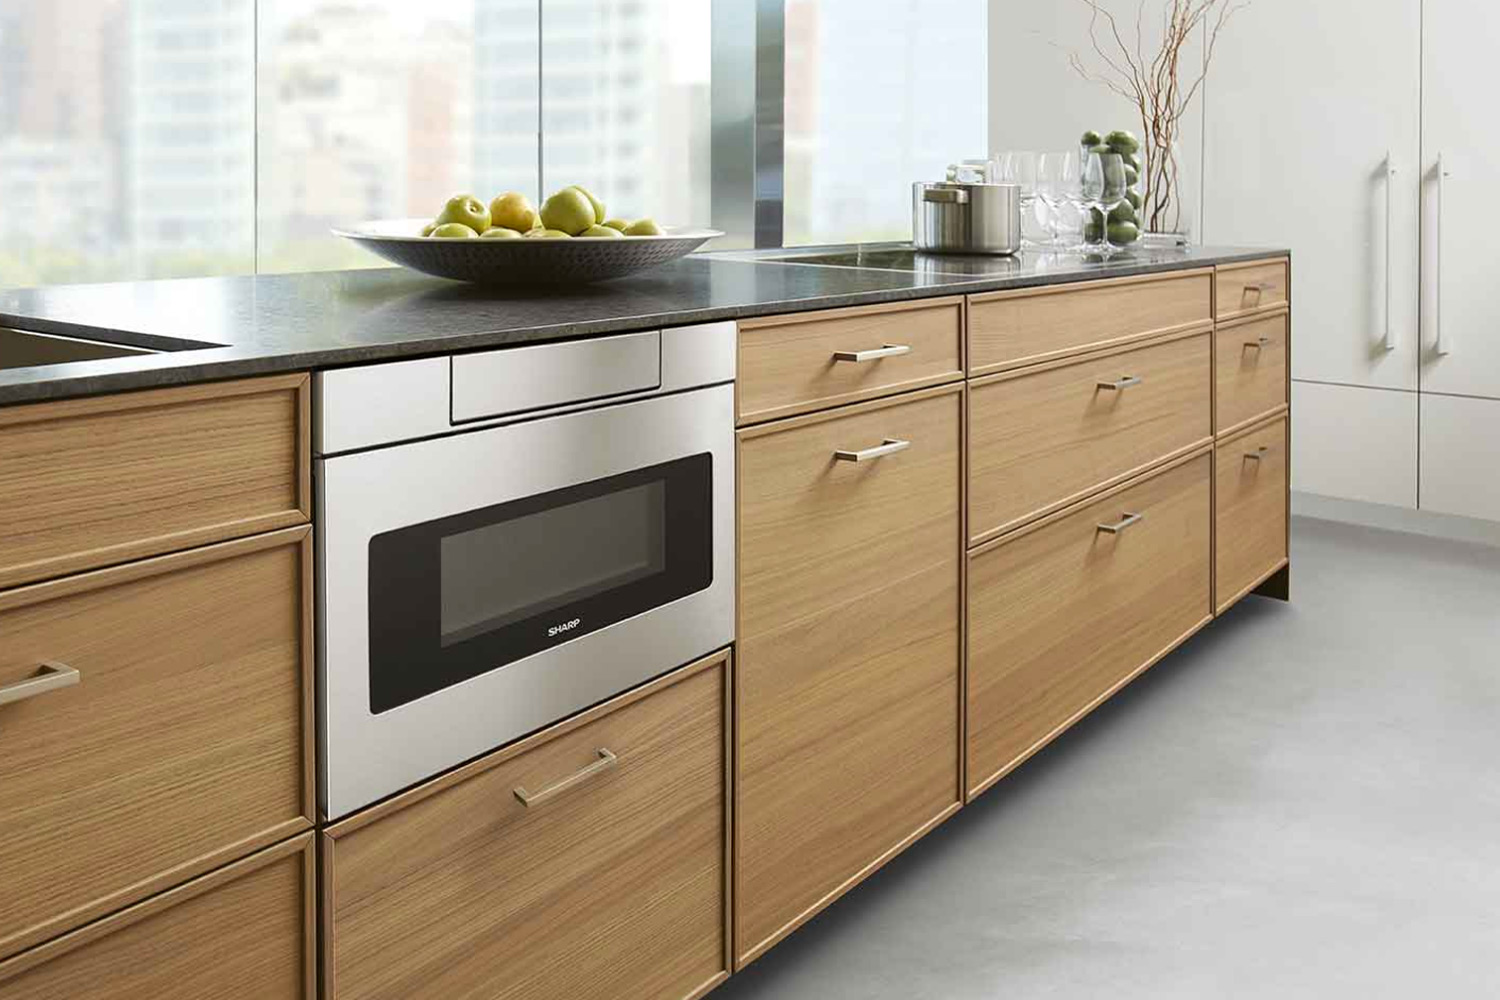 microwave drawer and appliance cabinets